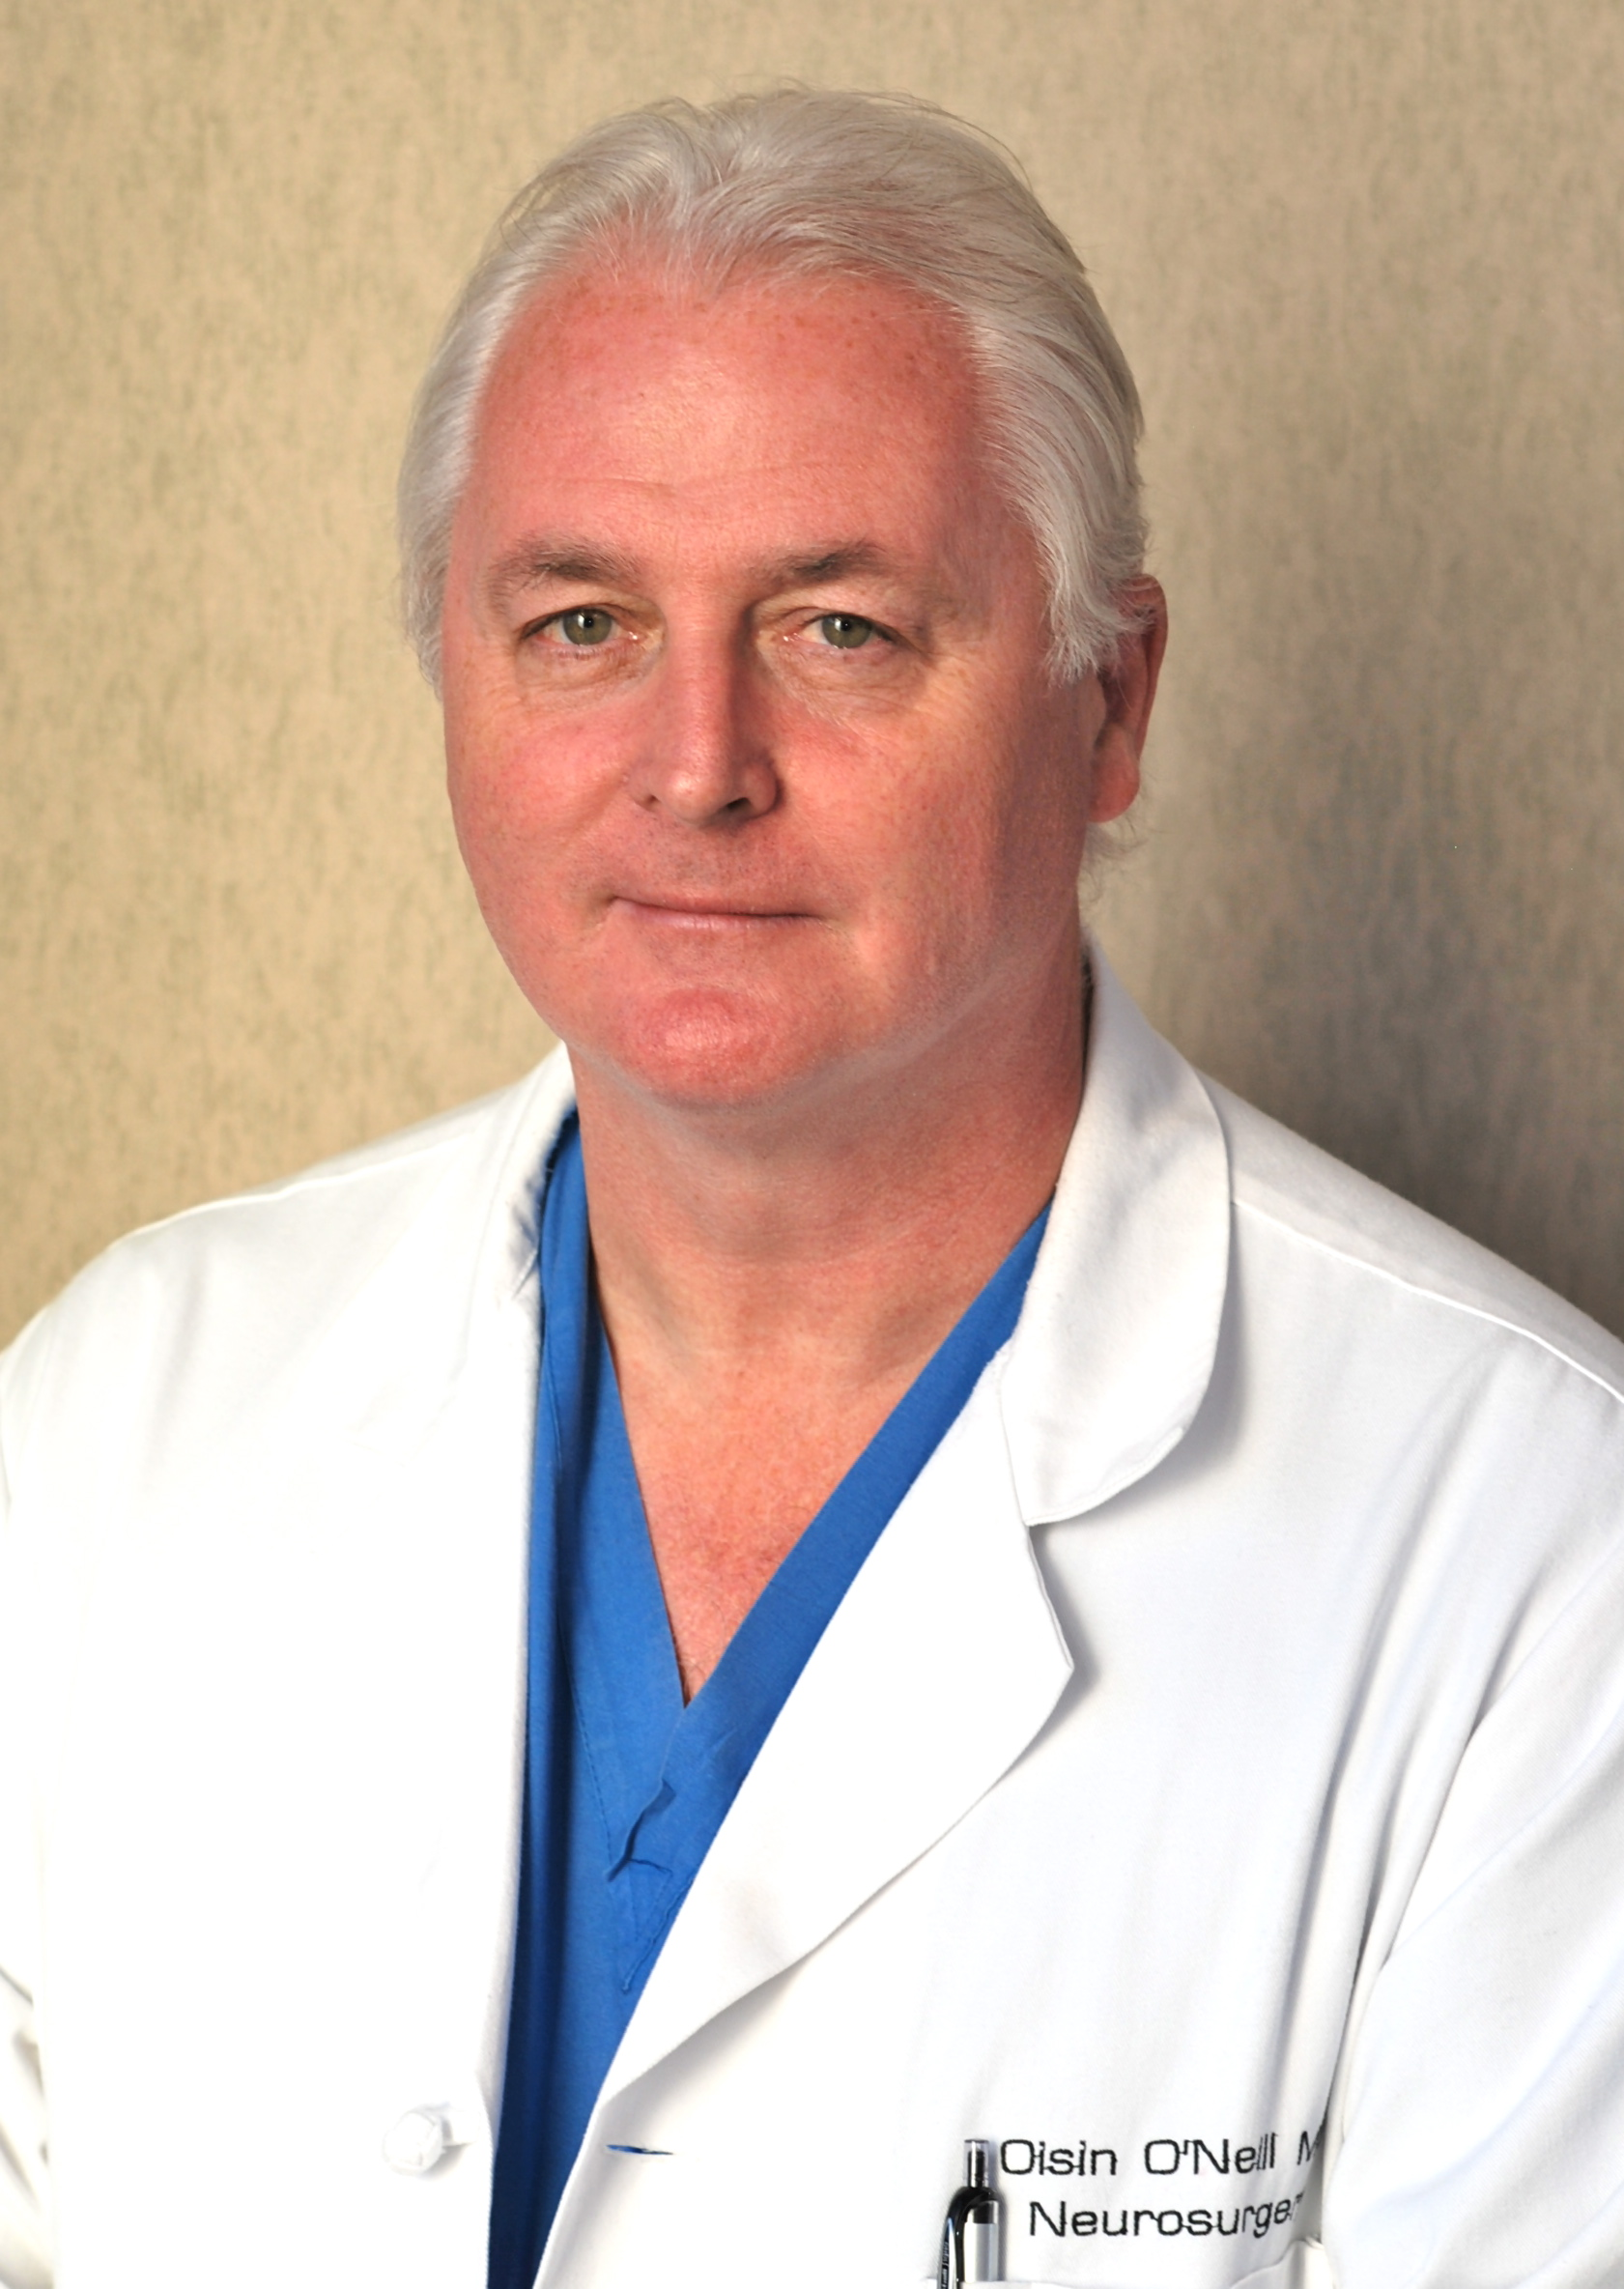 Oisin R. O'Neill, MD